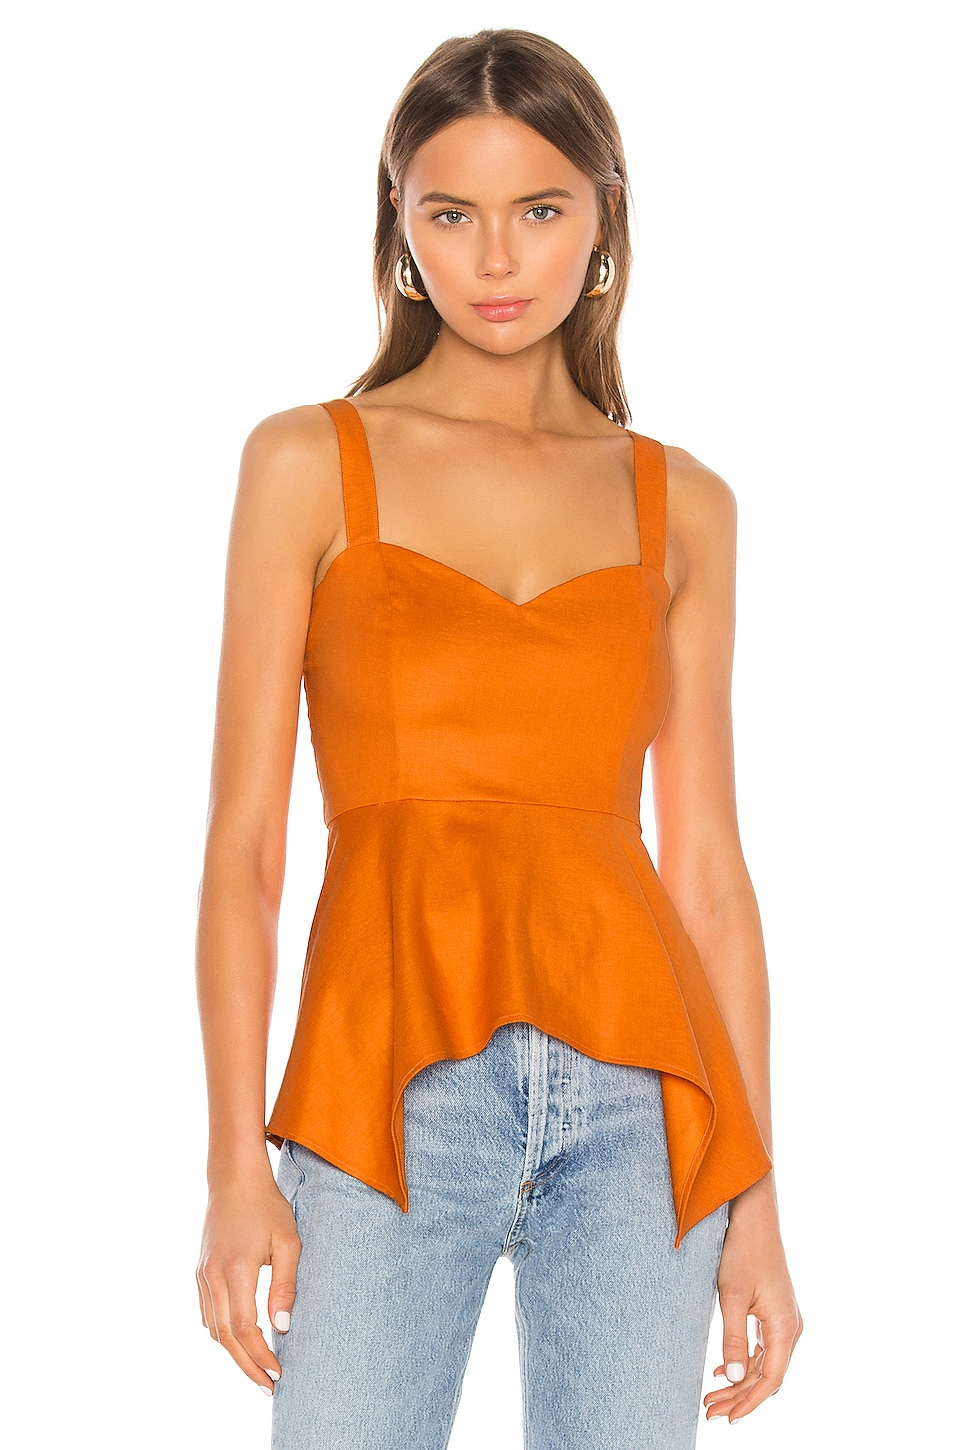 Camila Coelho Rosalie Top en Desert Orange